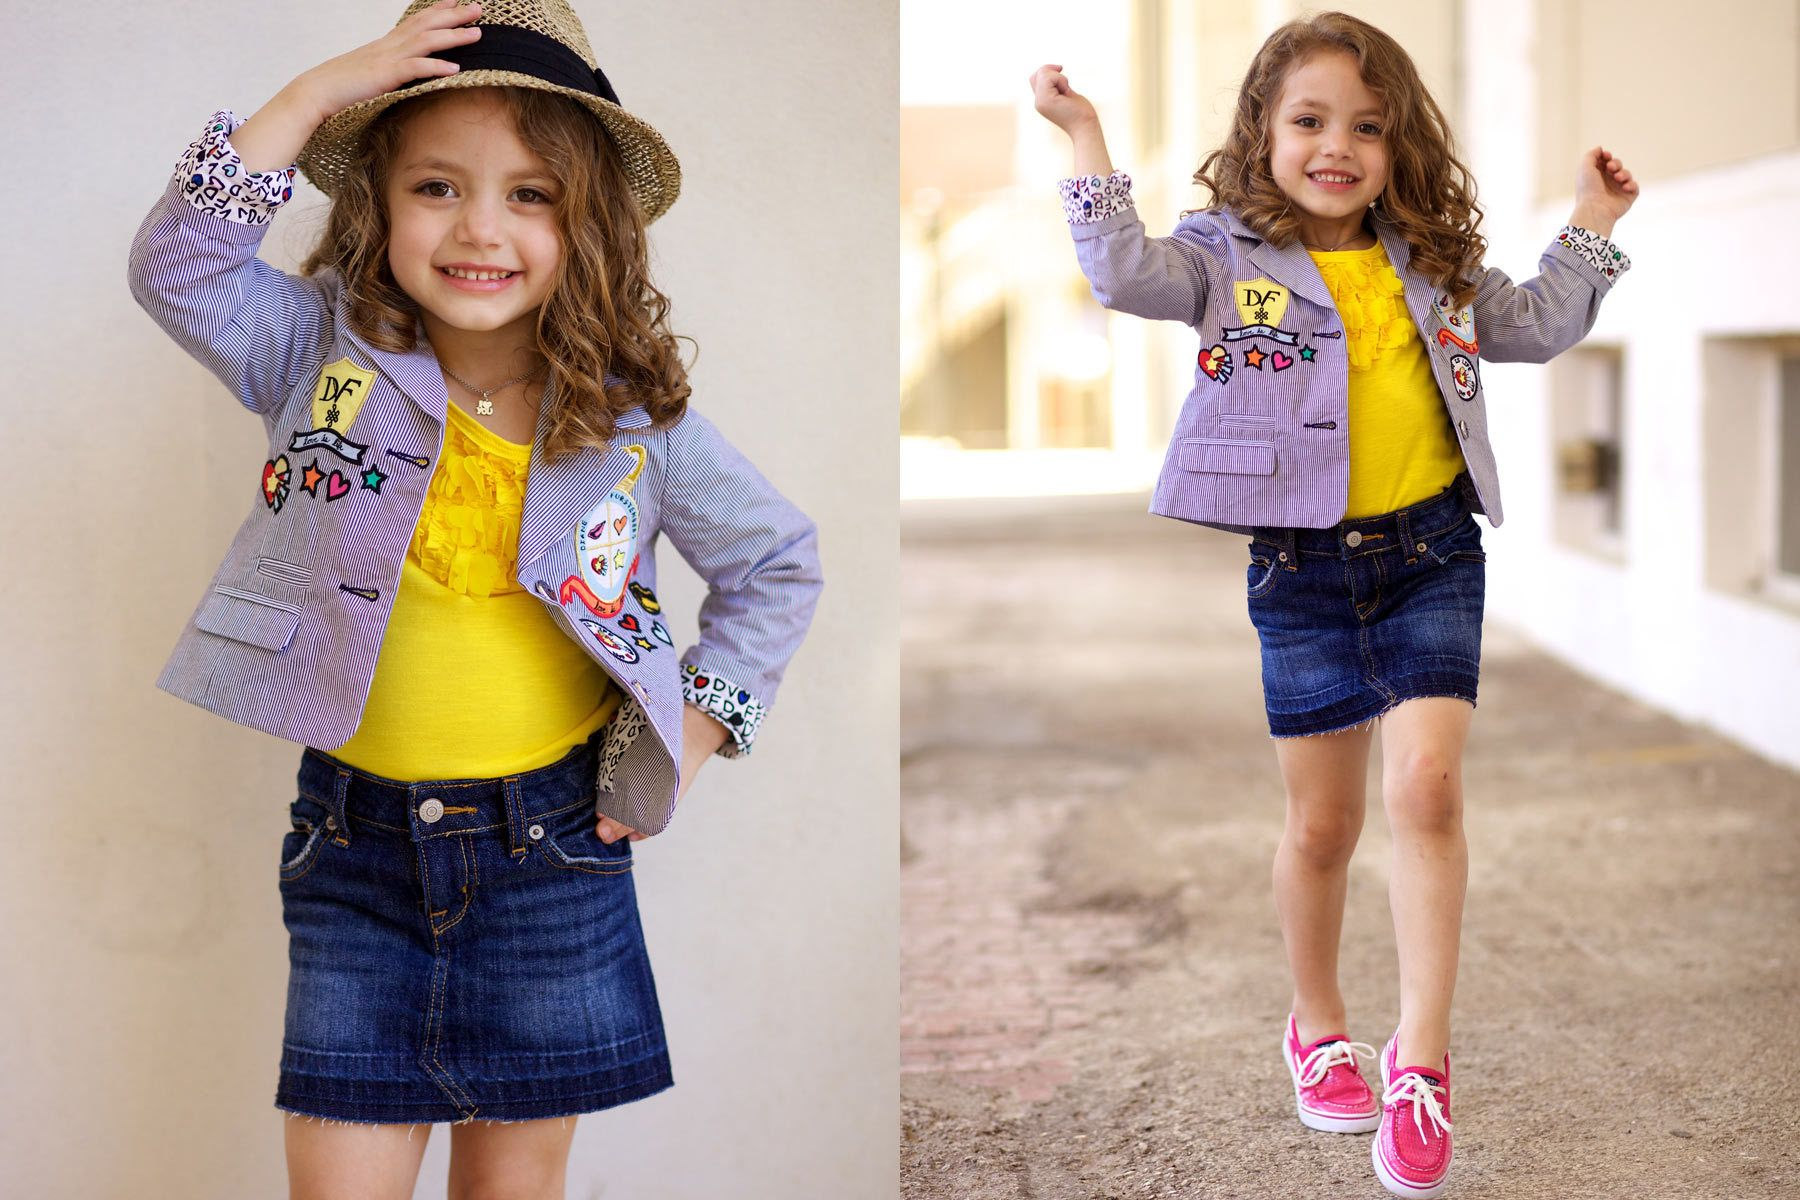 Children Models 17 Best images about Baby Products on Pinterest   Baby girls, Room  wallpaper and Children clothing